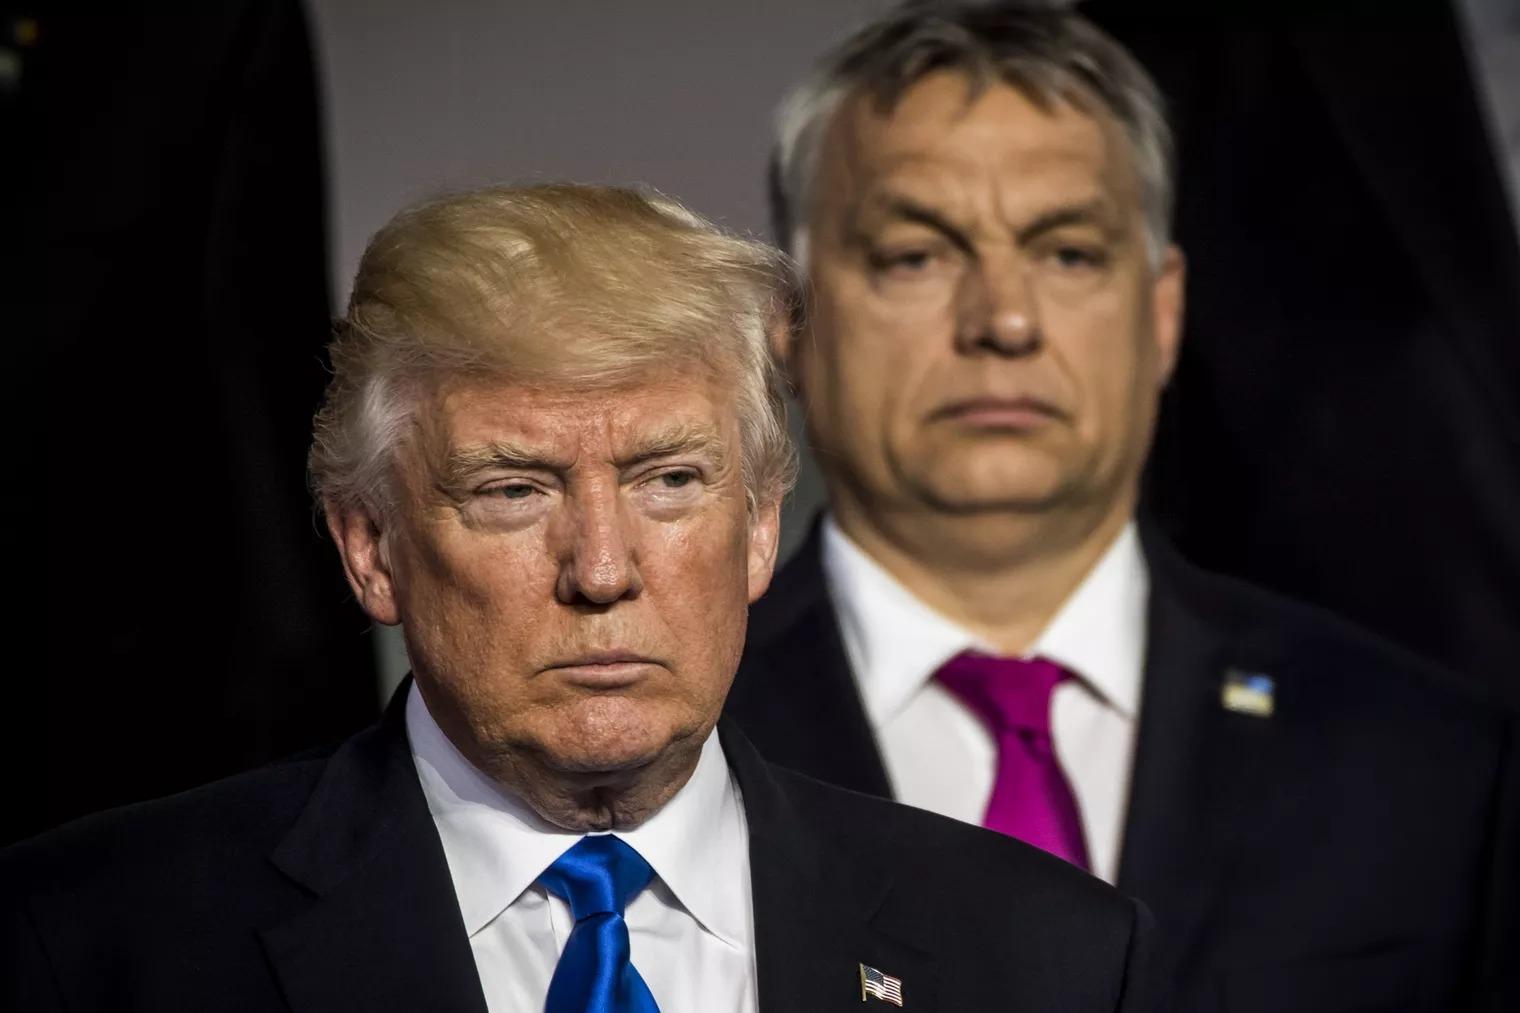 Hungary's leader is waging war on democracy. Today, he's at the White House.